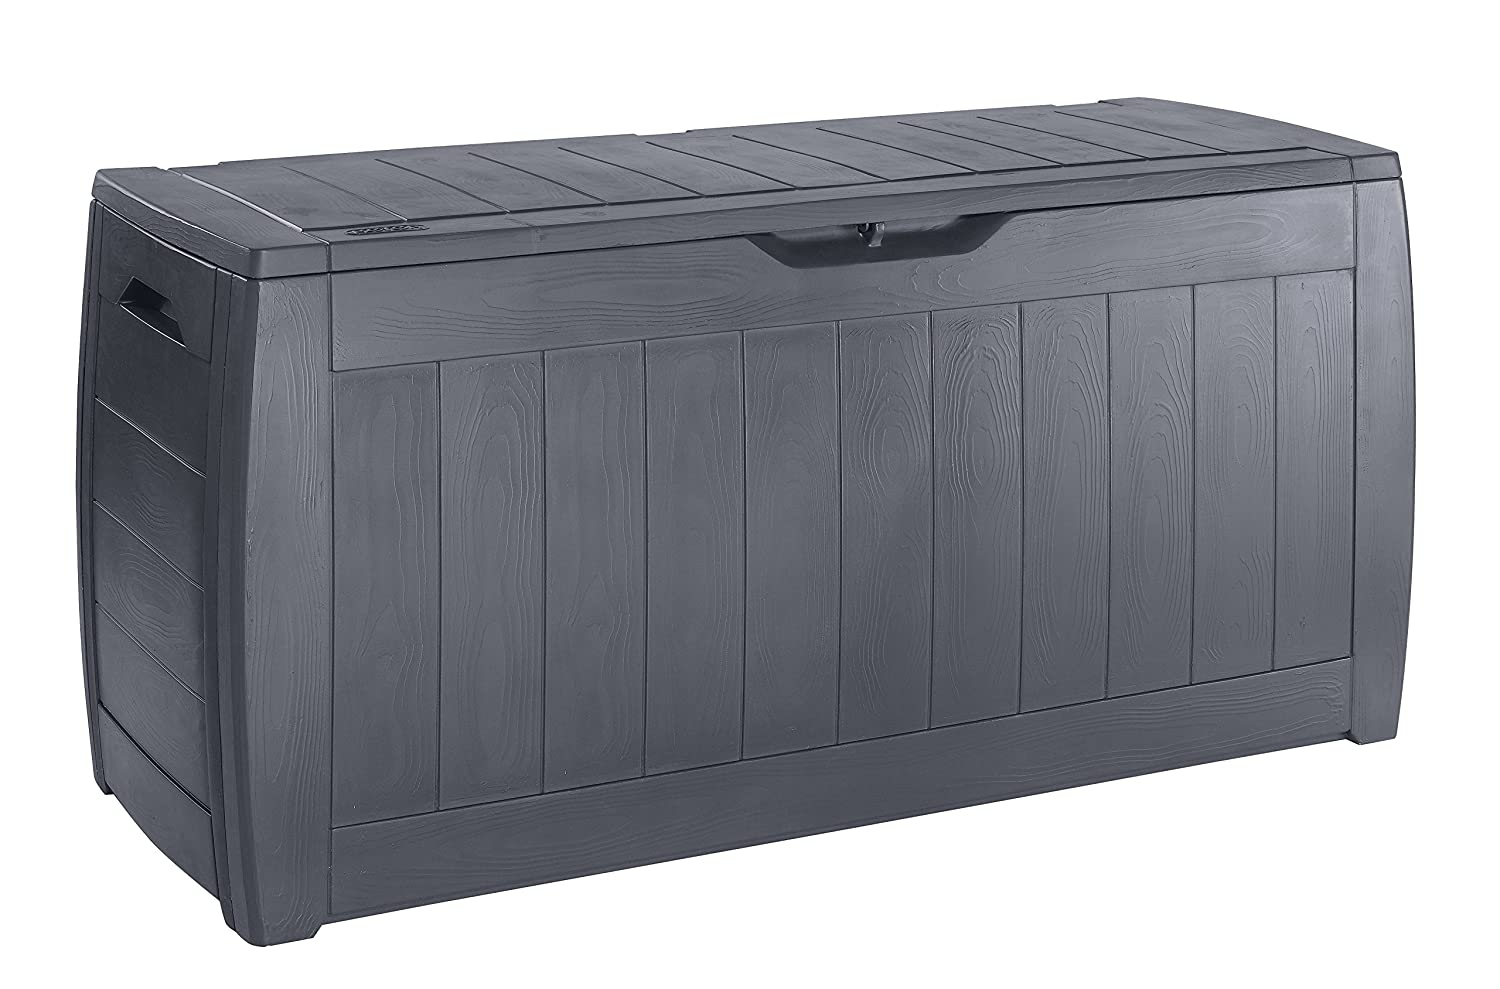 Chalet-Jardin 12 Hollywood Garden Storage Chest Charcoal Grey 270 L 12HOLLYWOOD 190023